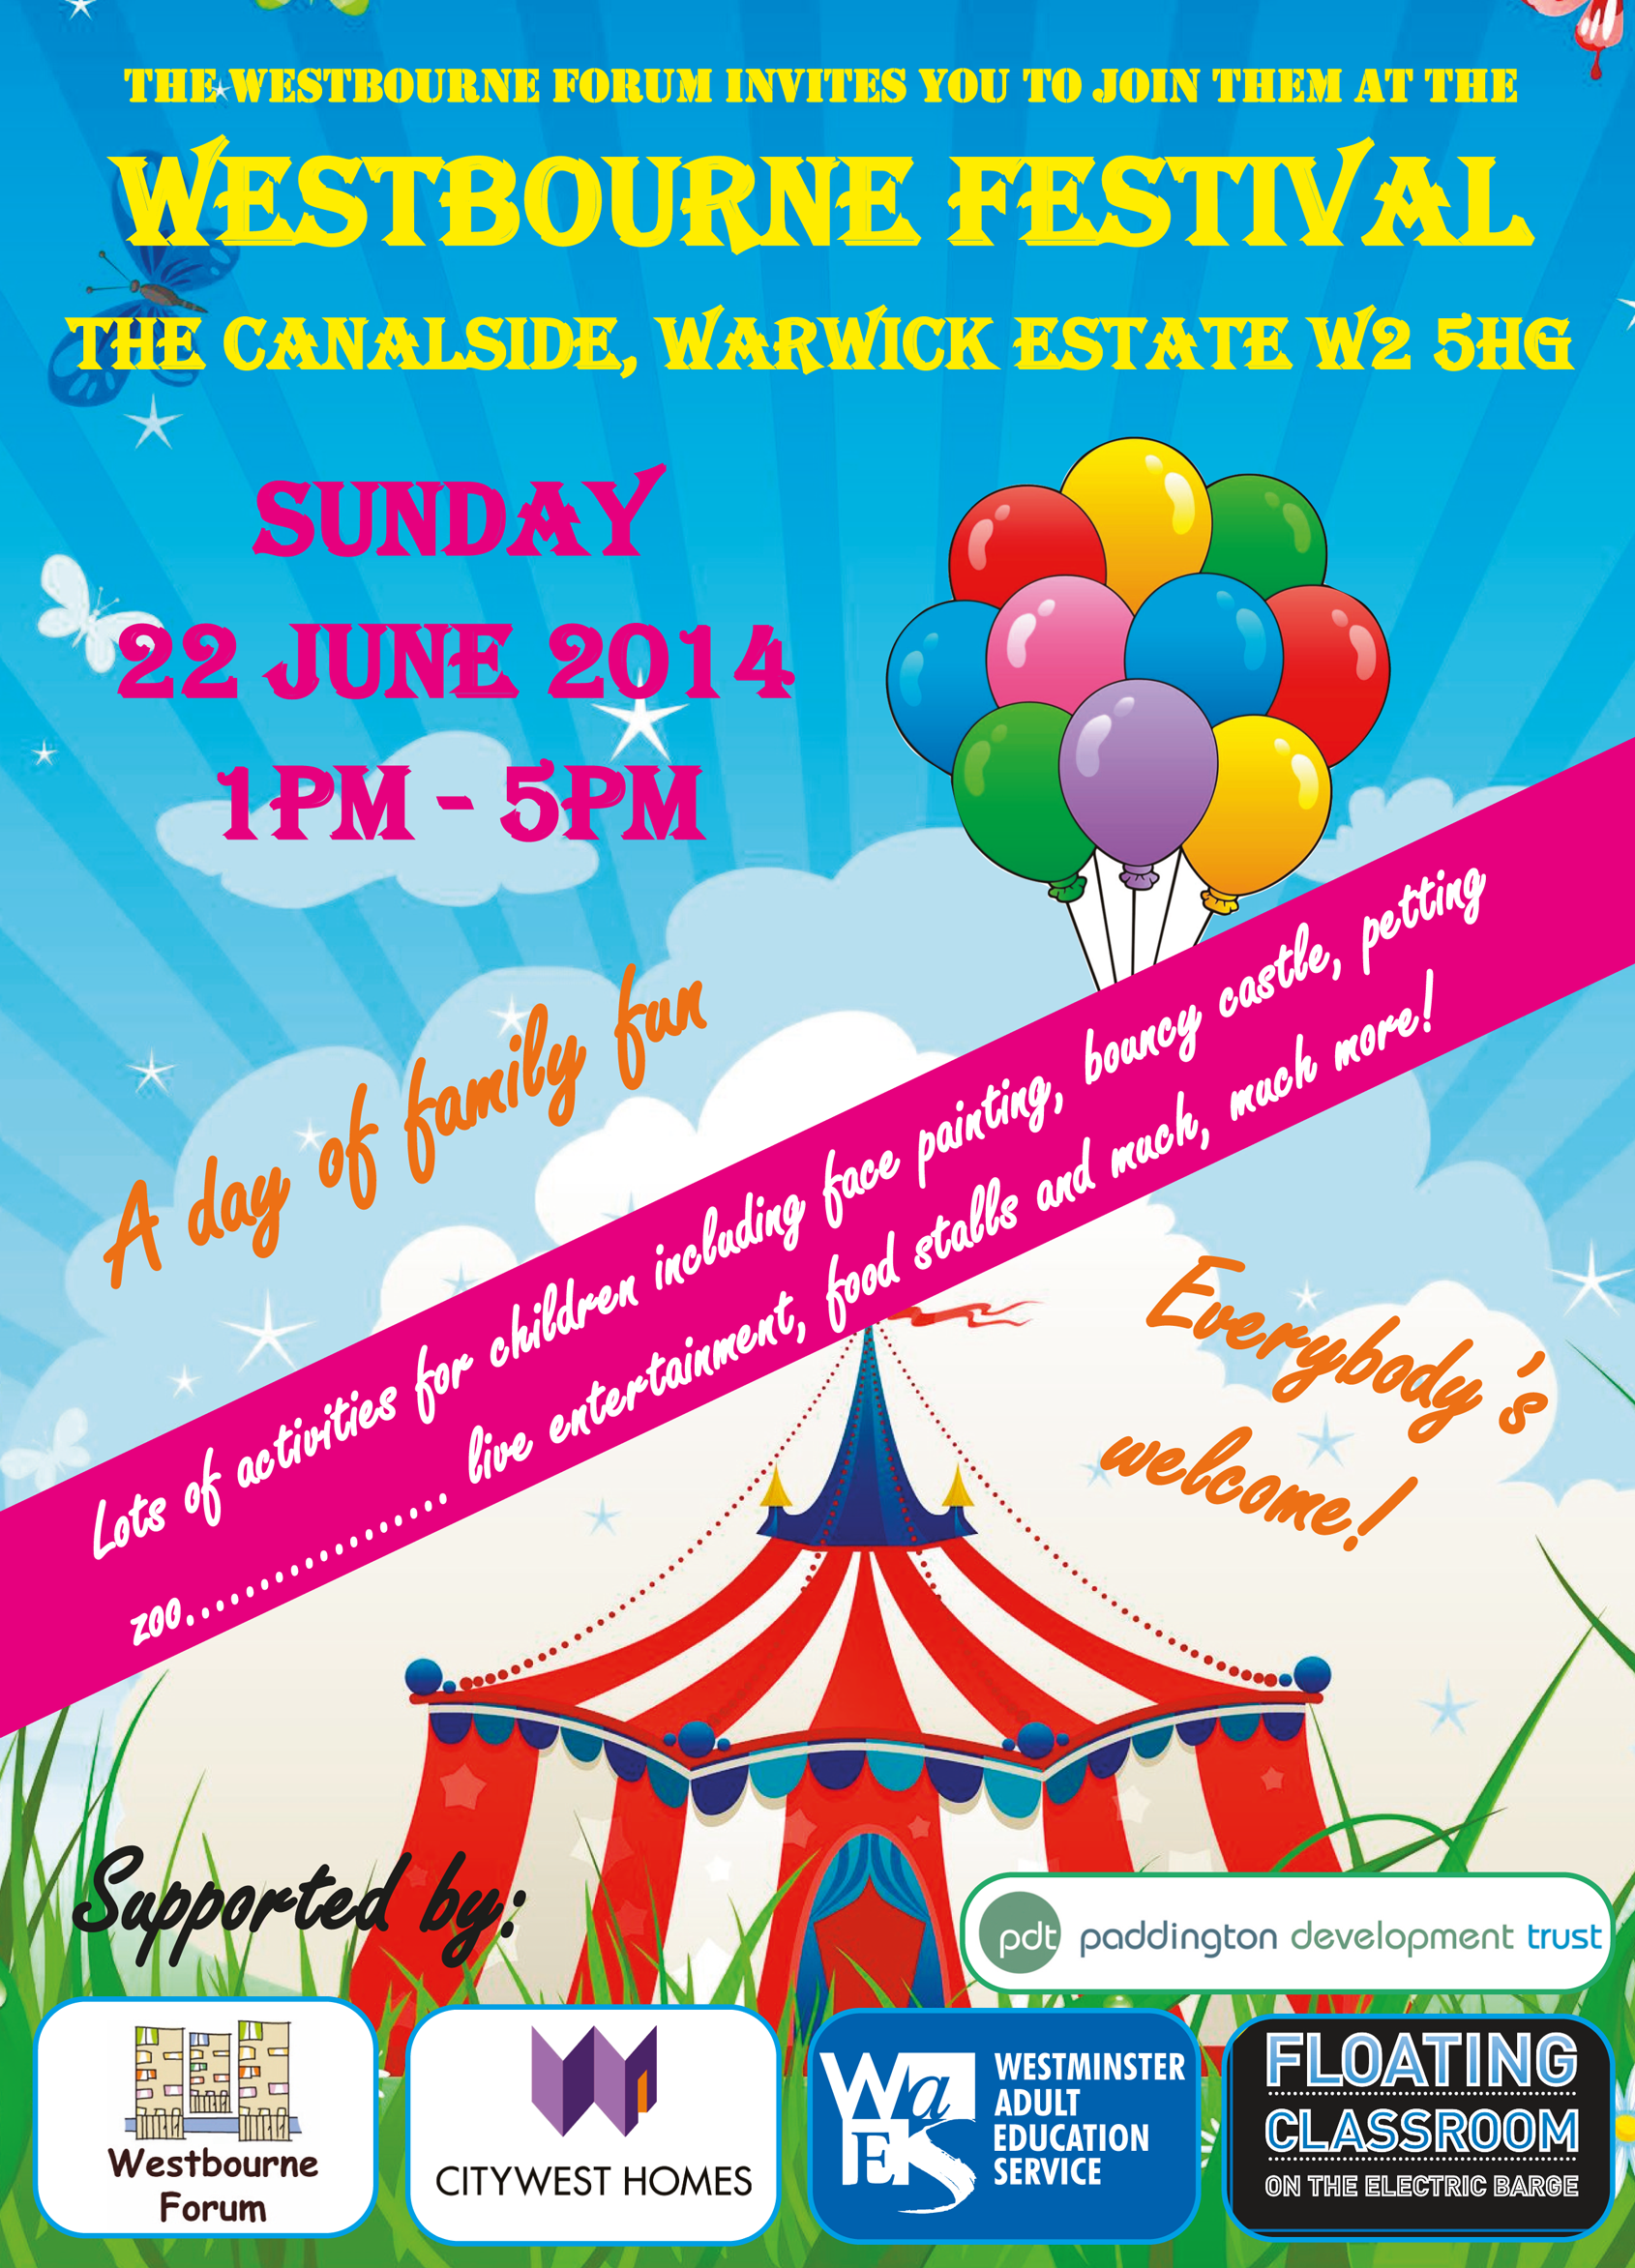 Westbourne Festival Circus Poster. The Westbourne Forum invites you to join them at the Westbourne Festival. This year it is The Canalside, Warwick Estate W2 5HG on Sunday 22 June 2014 - 1pm to 5 pm. A day of family fun - Lot's of activities for children including face painting, bouncy castle, petting zoo........ Live entertainment, food stalls and much, much more! Everybody's Welcome!